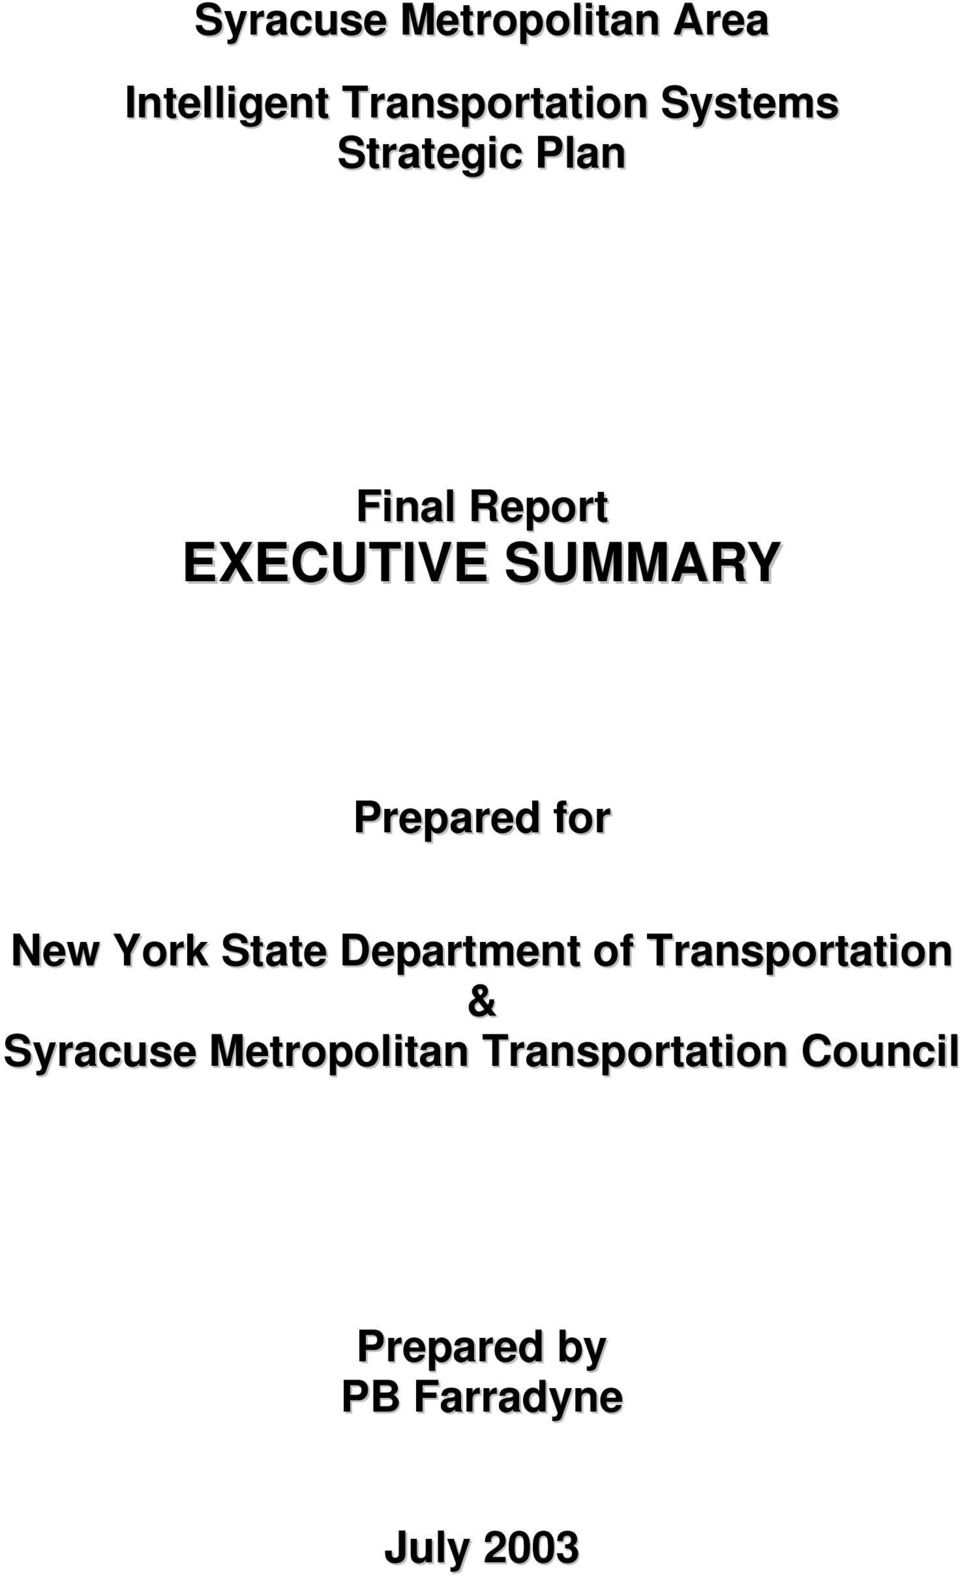 New York State Department of Transportation & Syracuse